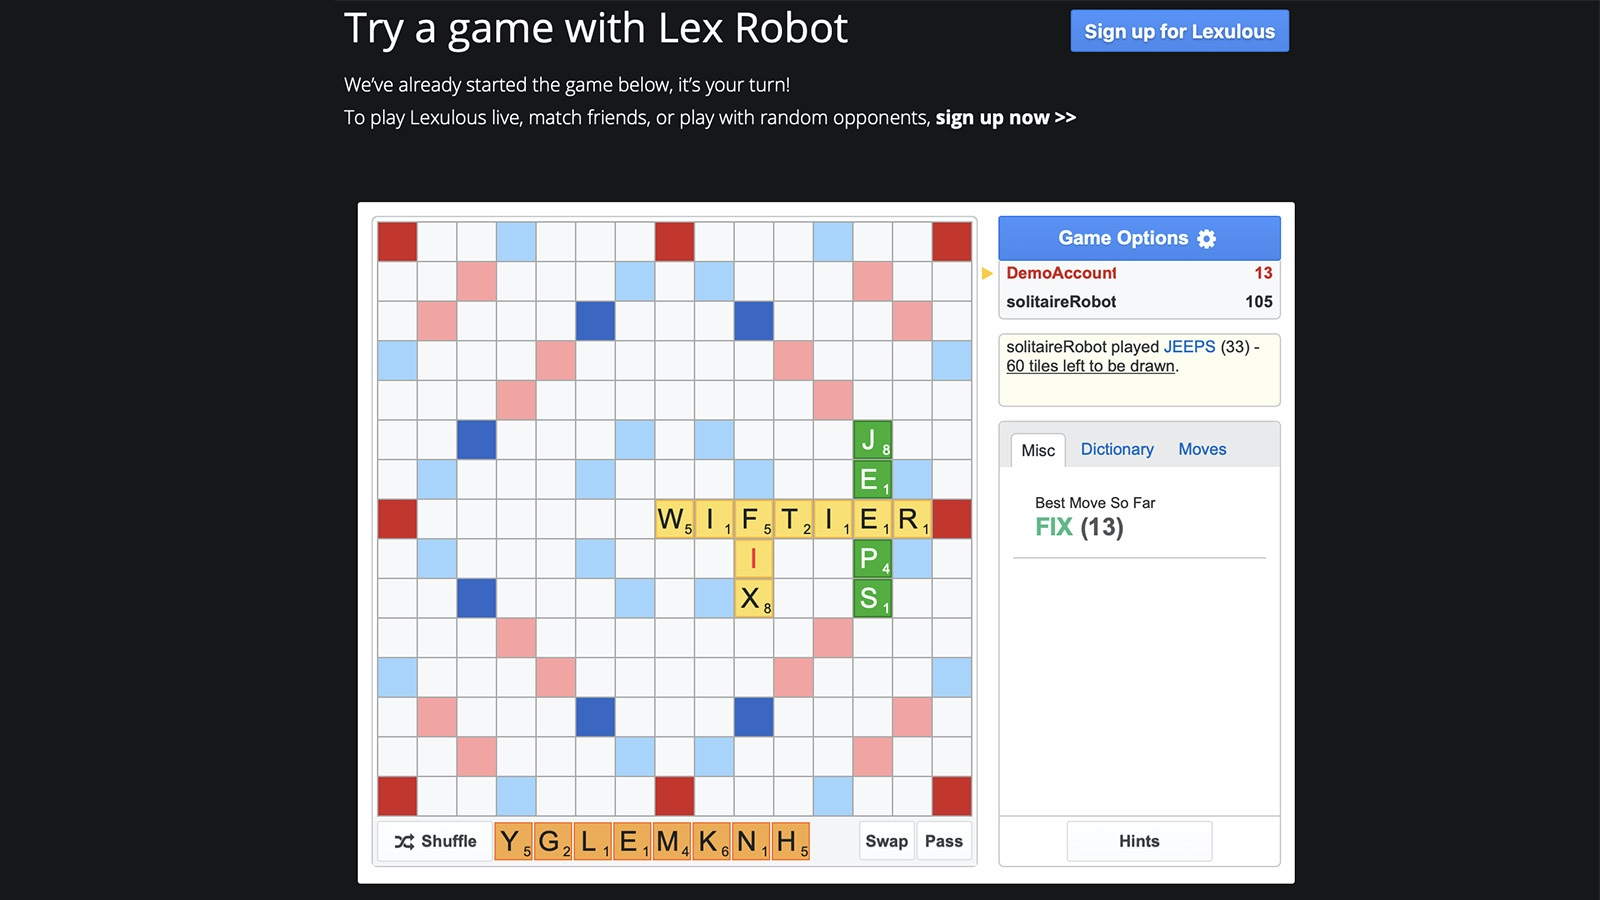 Screenshot of Lexulous game